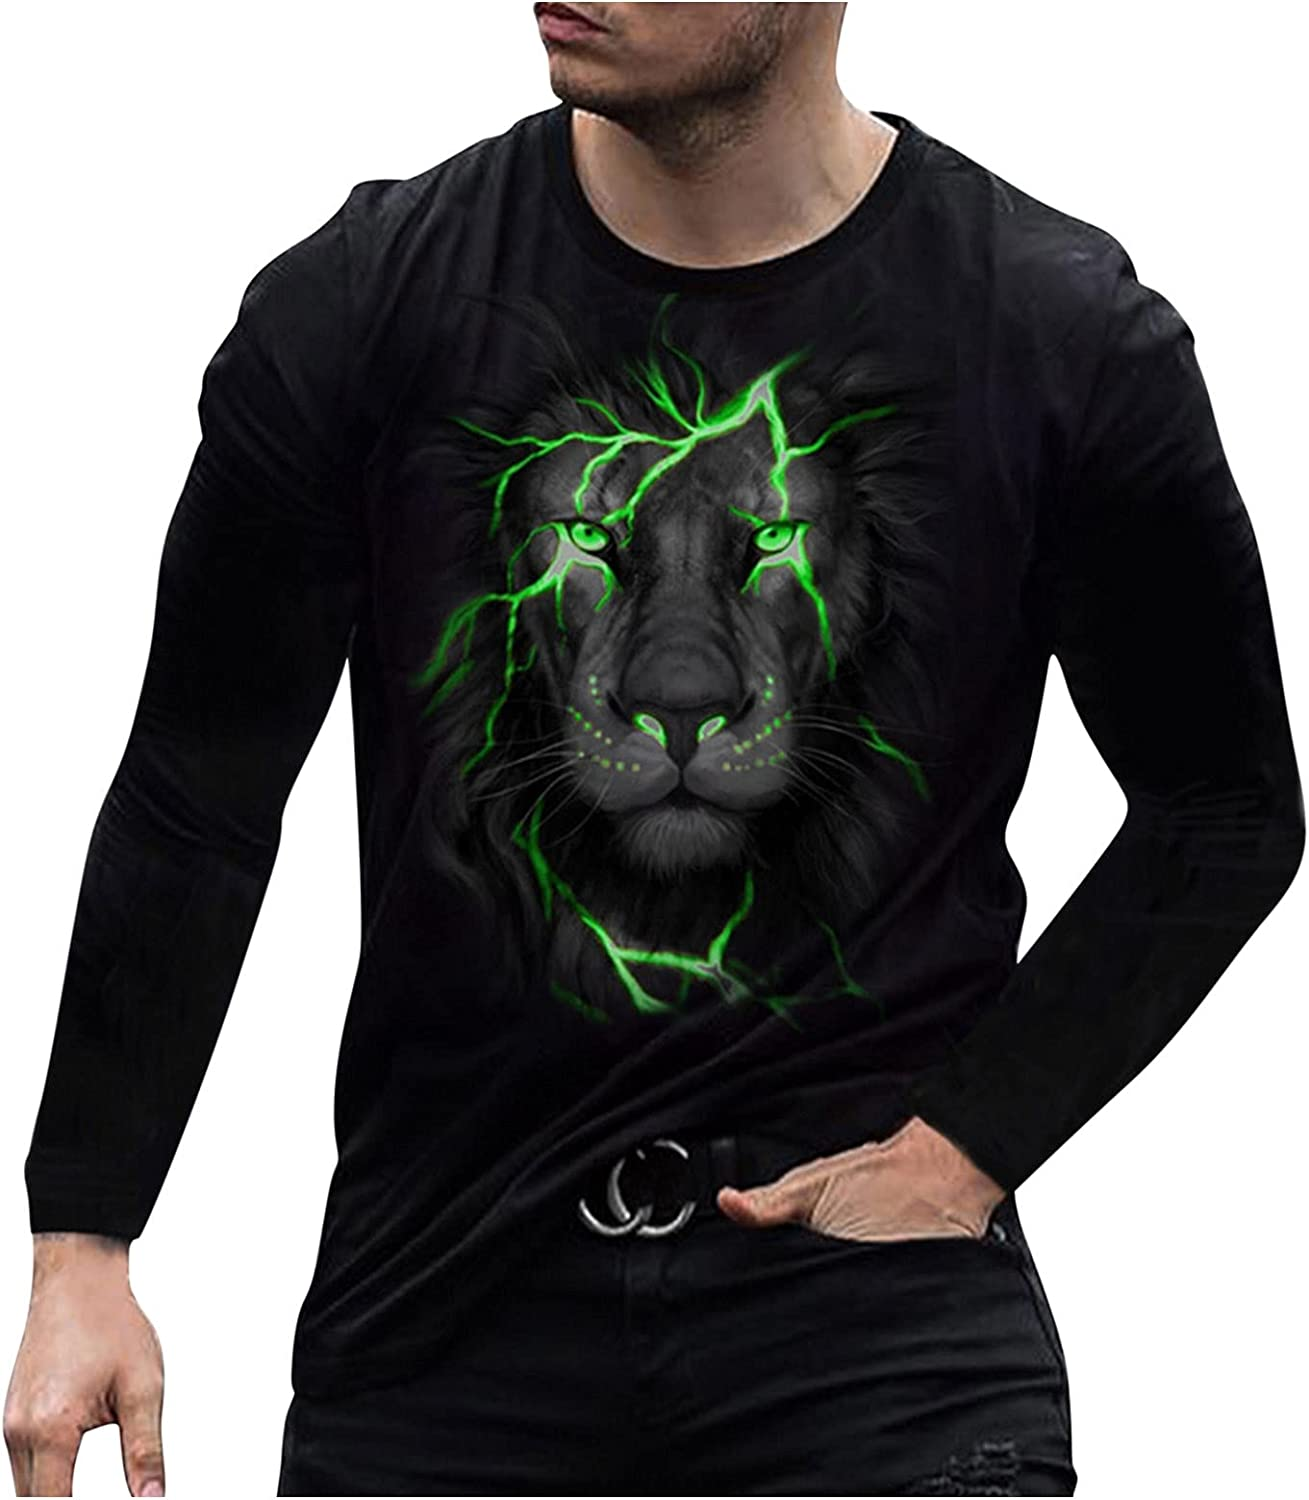 Tops for Men Blouse 3D Digital Printed Crew Neck T-Shirt Slim Fit Novelty Graphic Tops Summer Casual Basic Comfy Tee